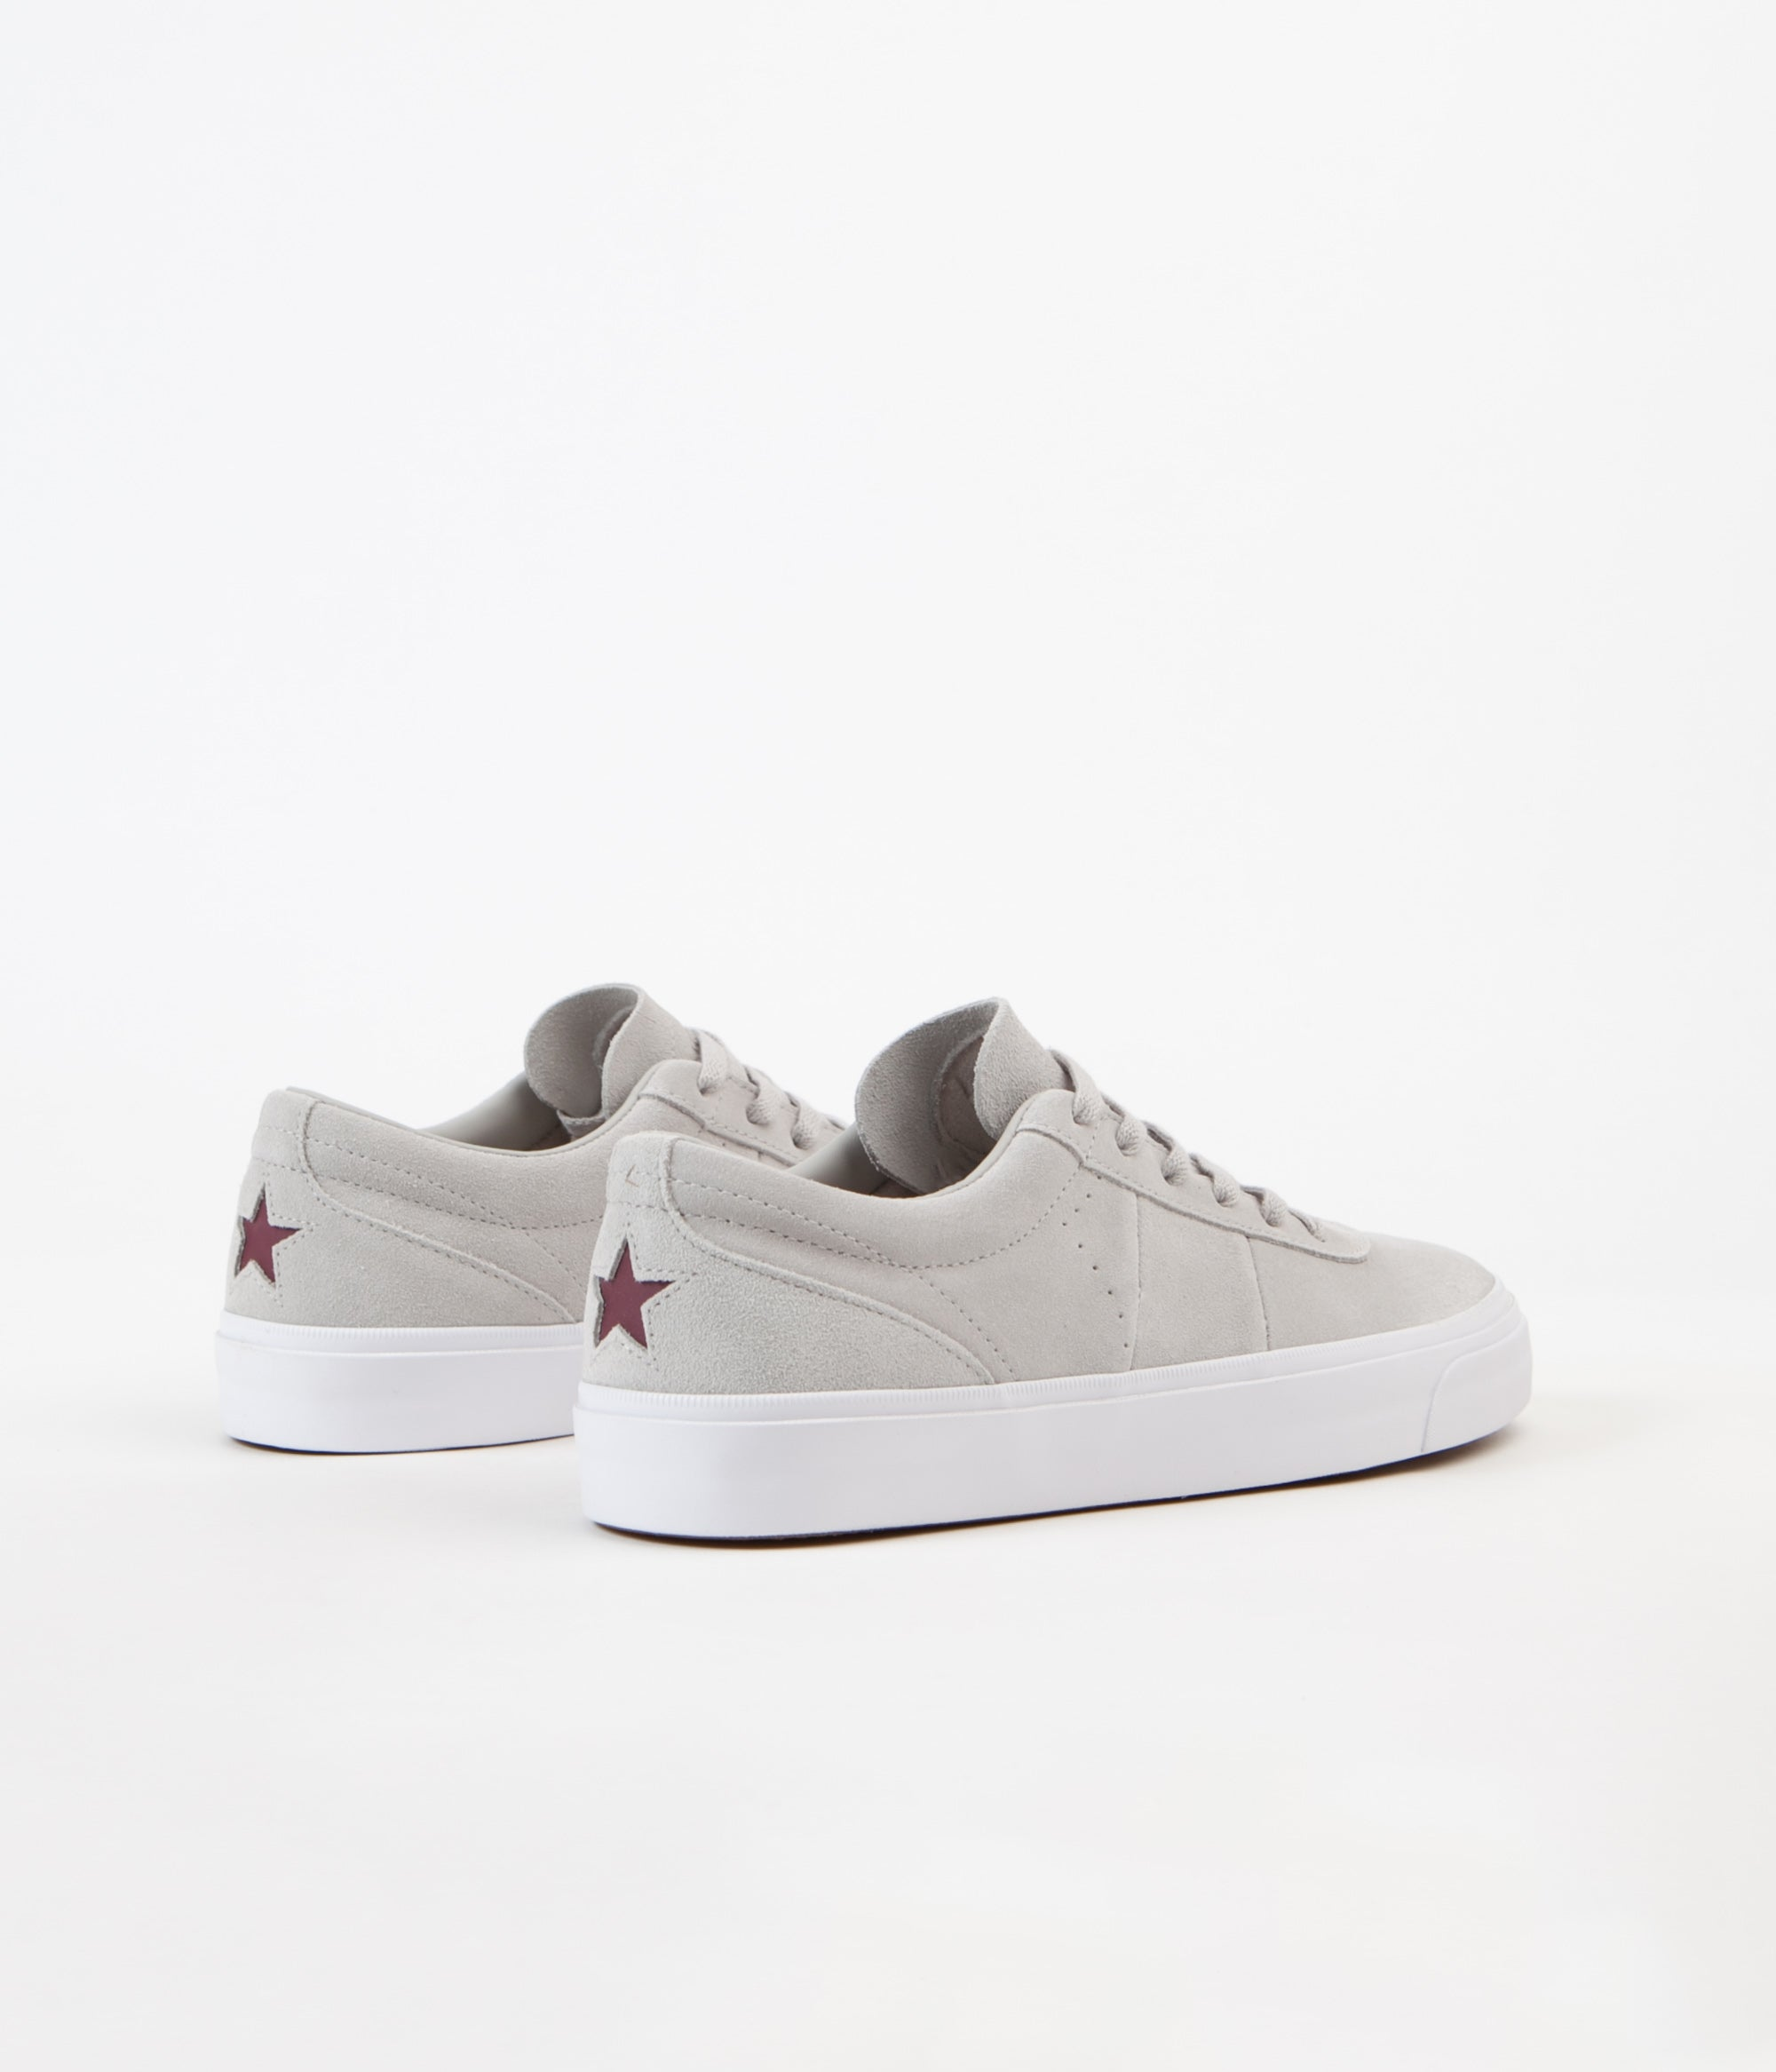 9cf8b9b19b7bd9 ... new style converse one star cc pro ox shoes pale grey pale grey deep  bordeaux 3573d